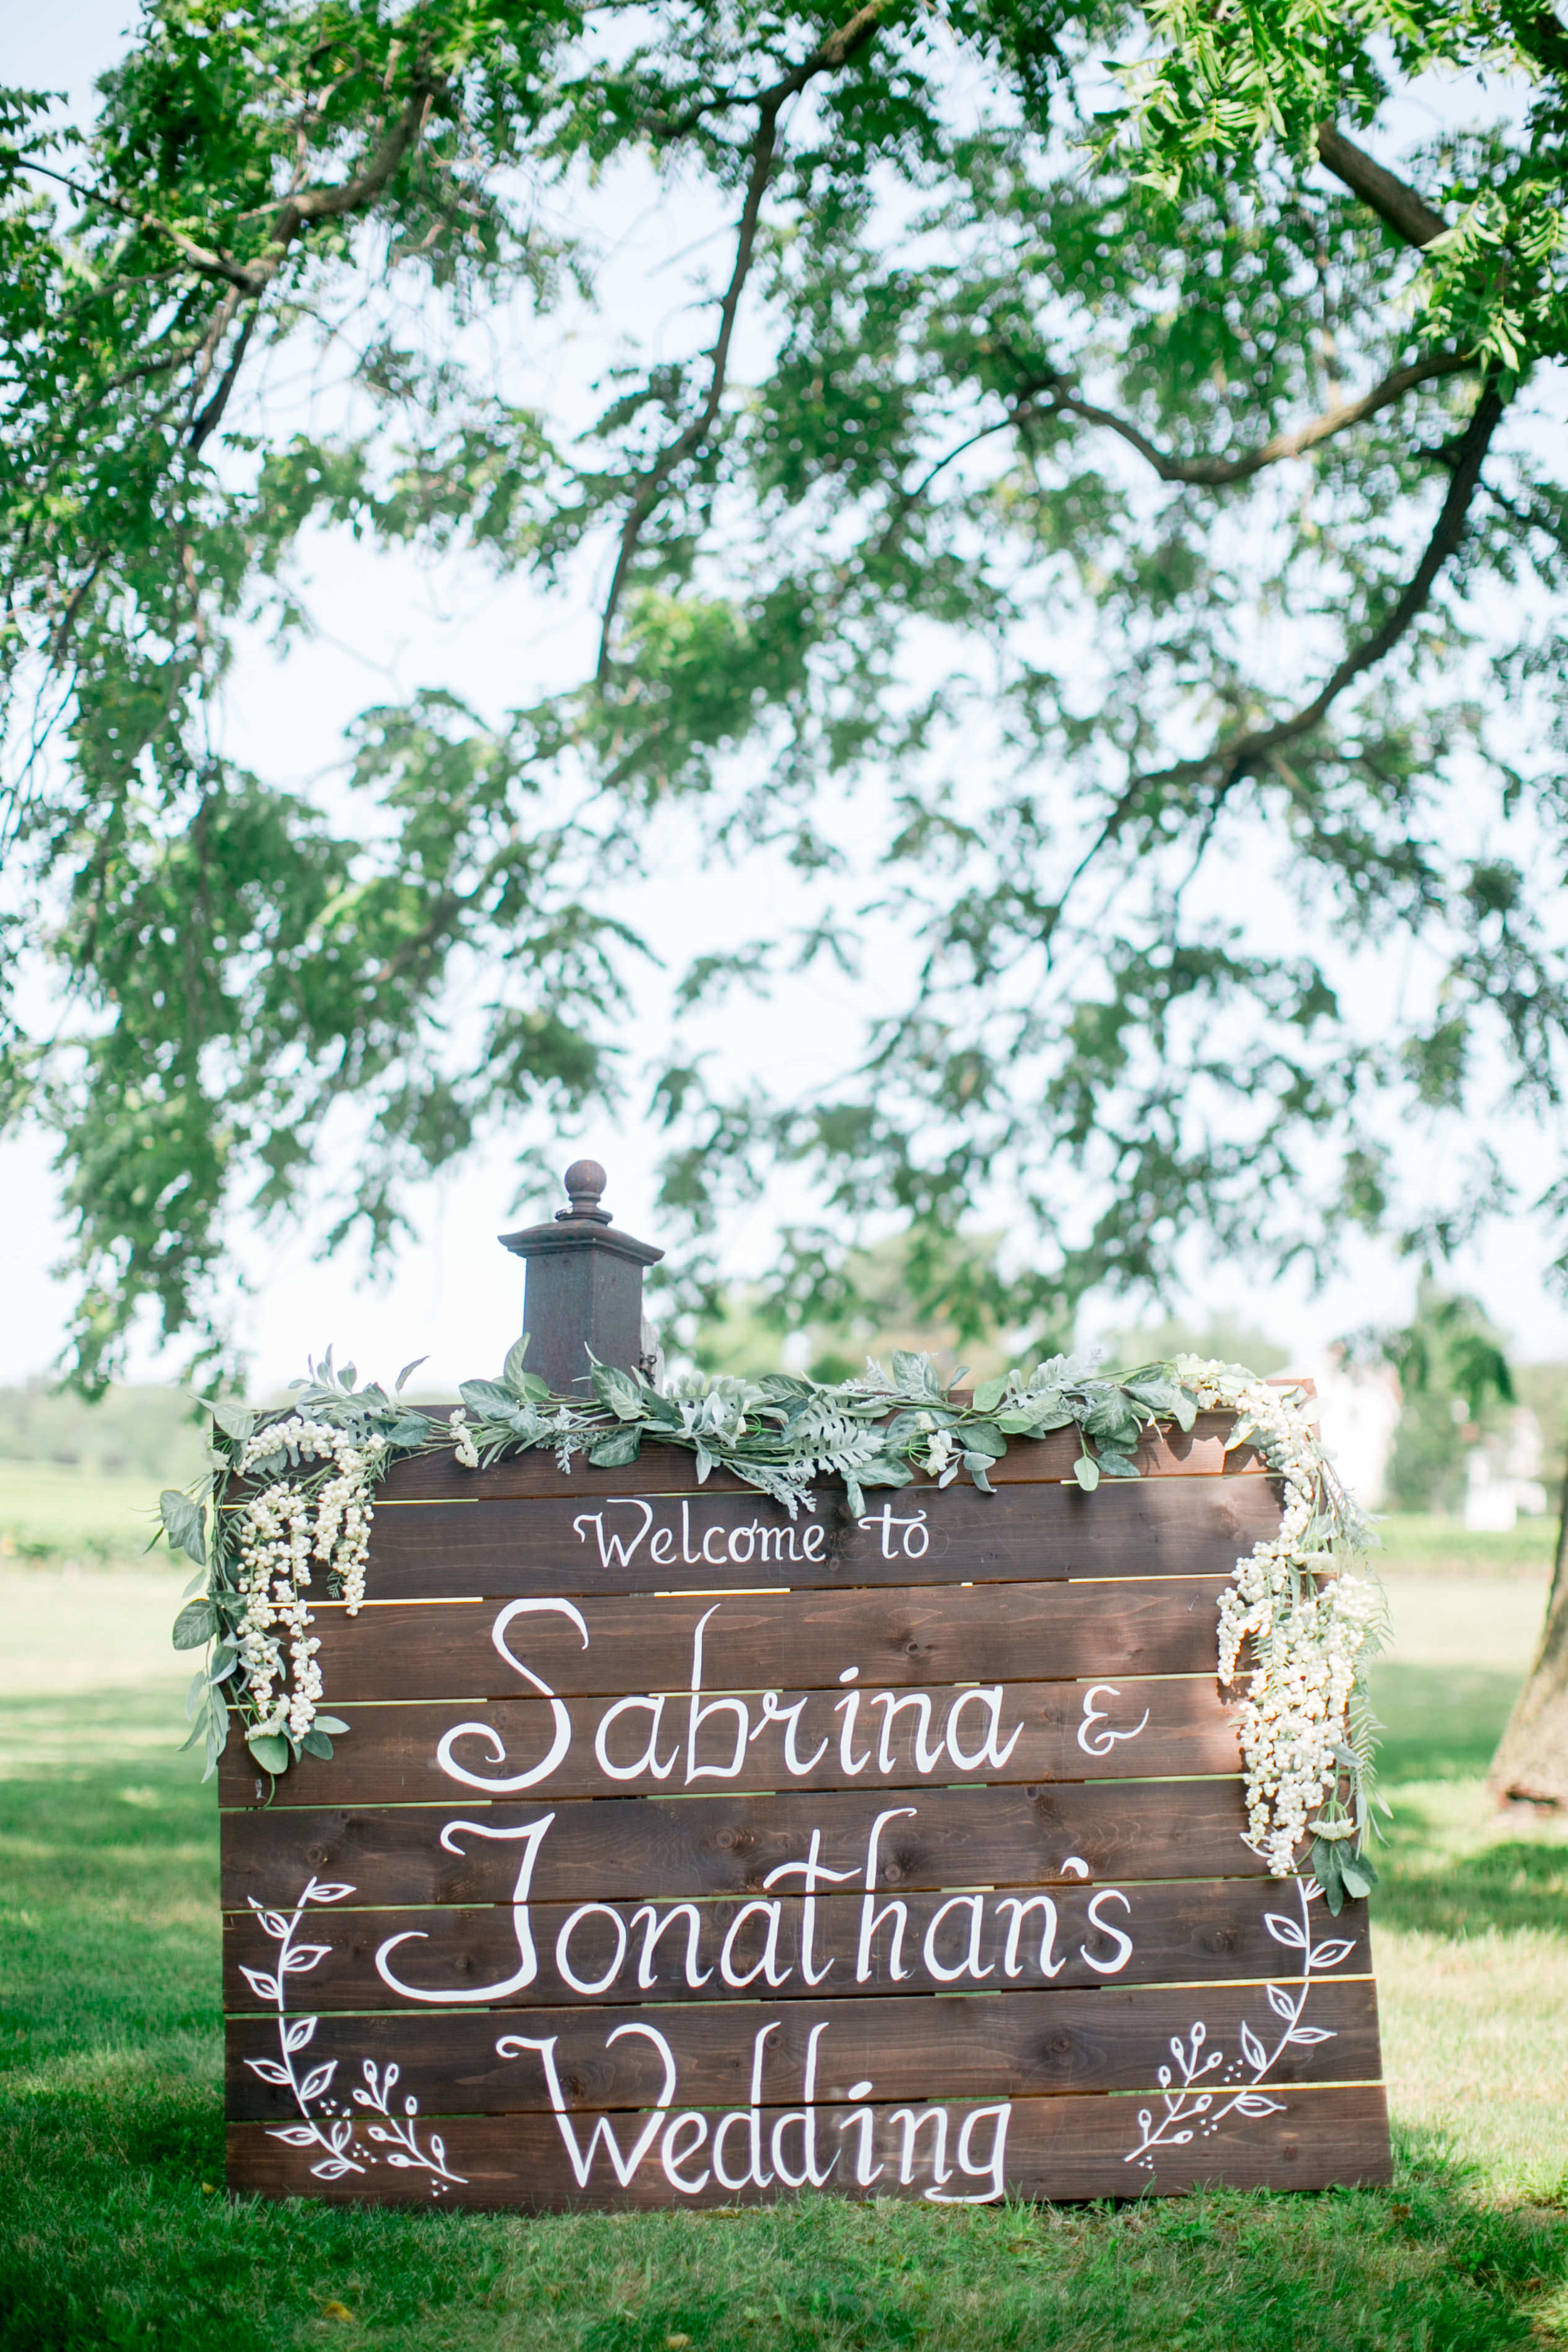 Sabrina___Jonathan_Wedding___High_Res._Finals_Daniel_Ricci_Weddings_93.jpg